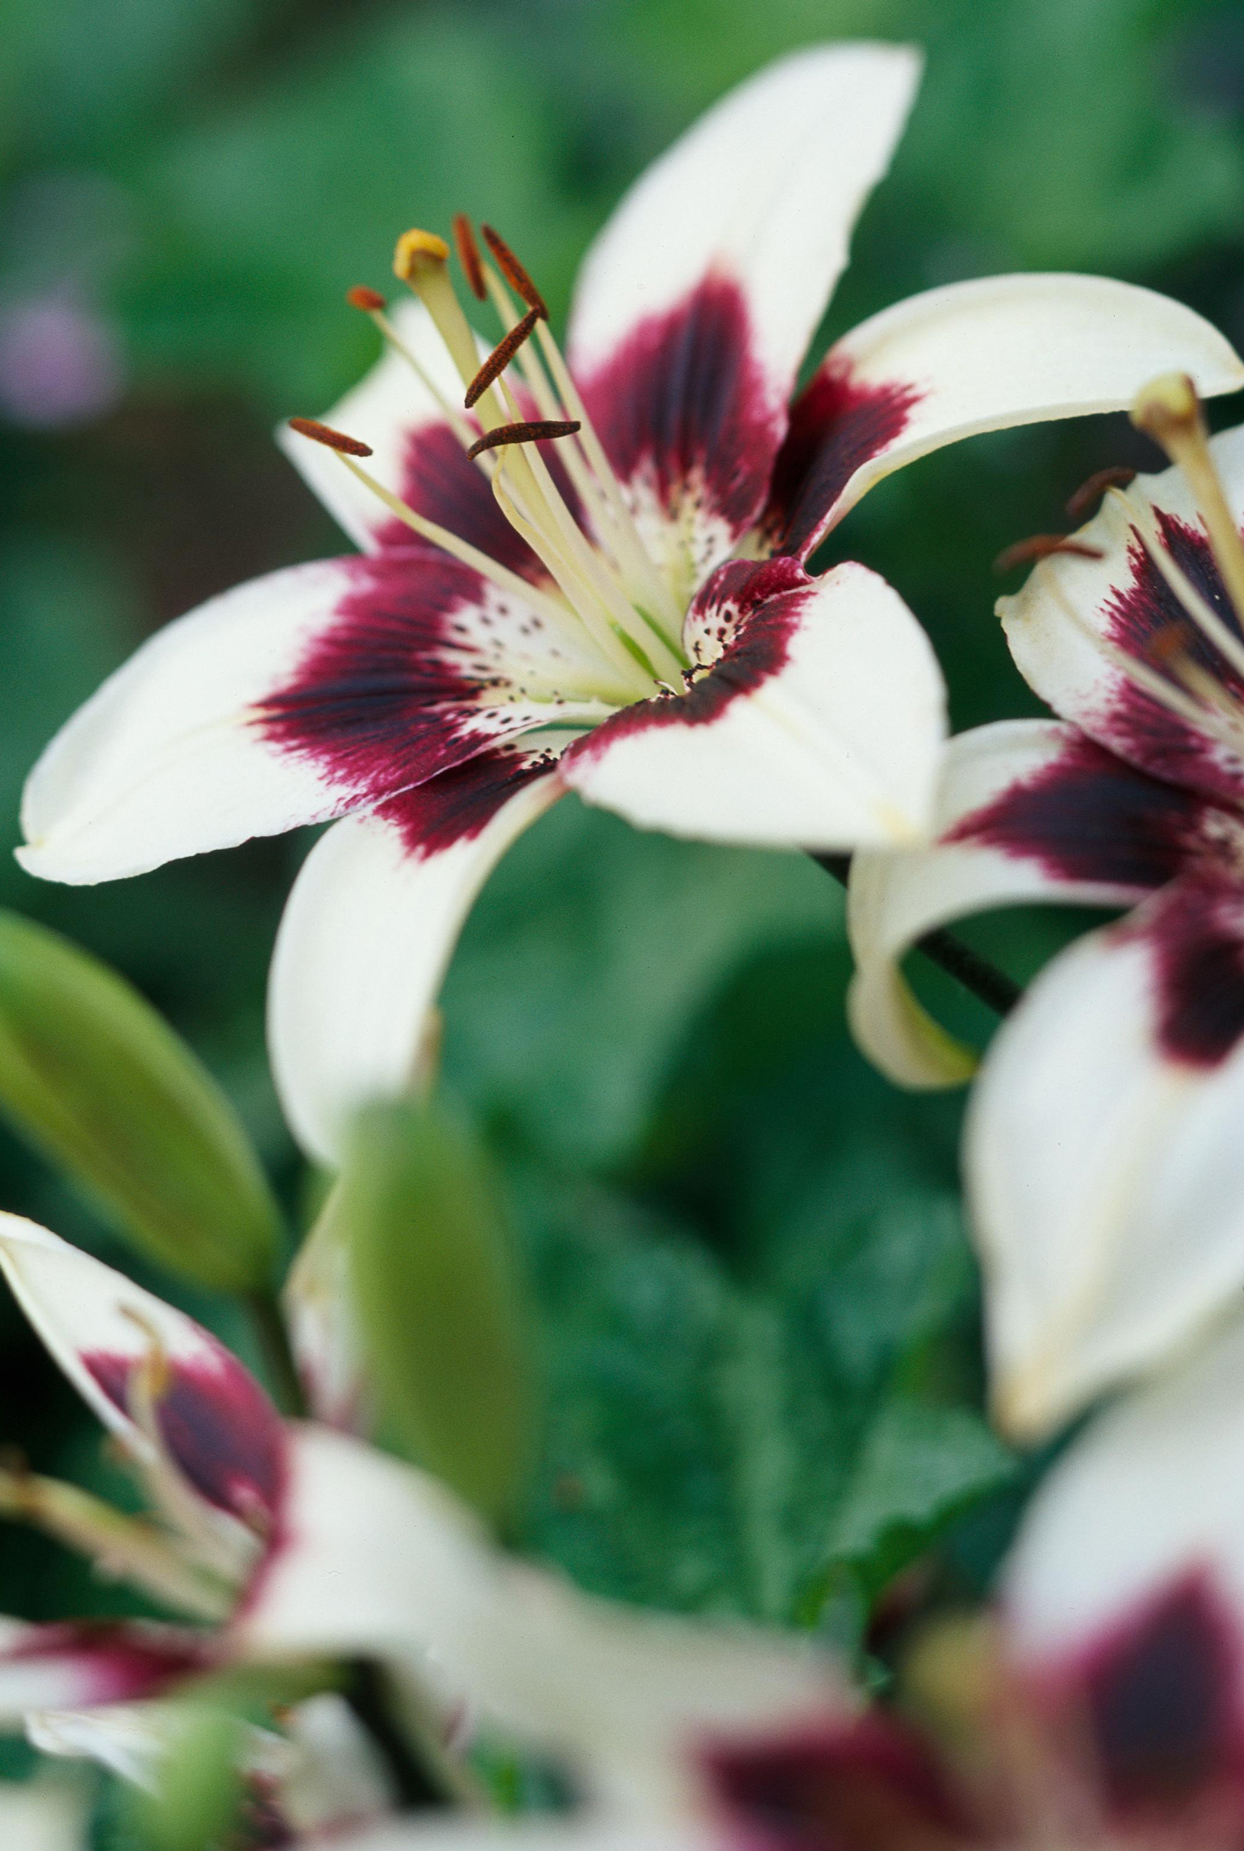 'Centerfold' Asiatic lily